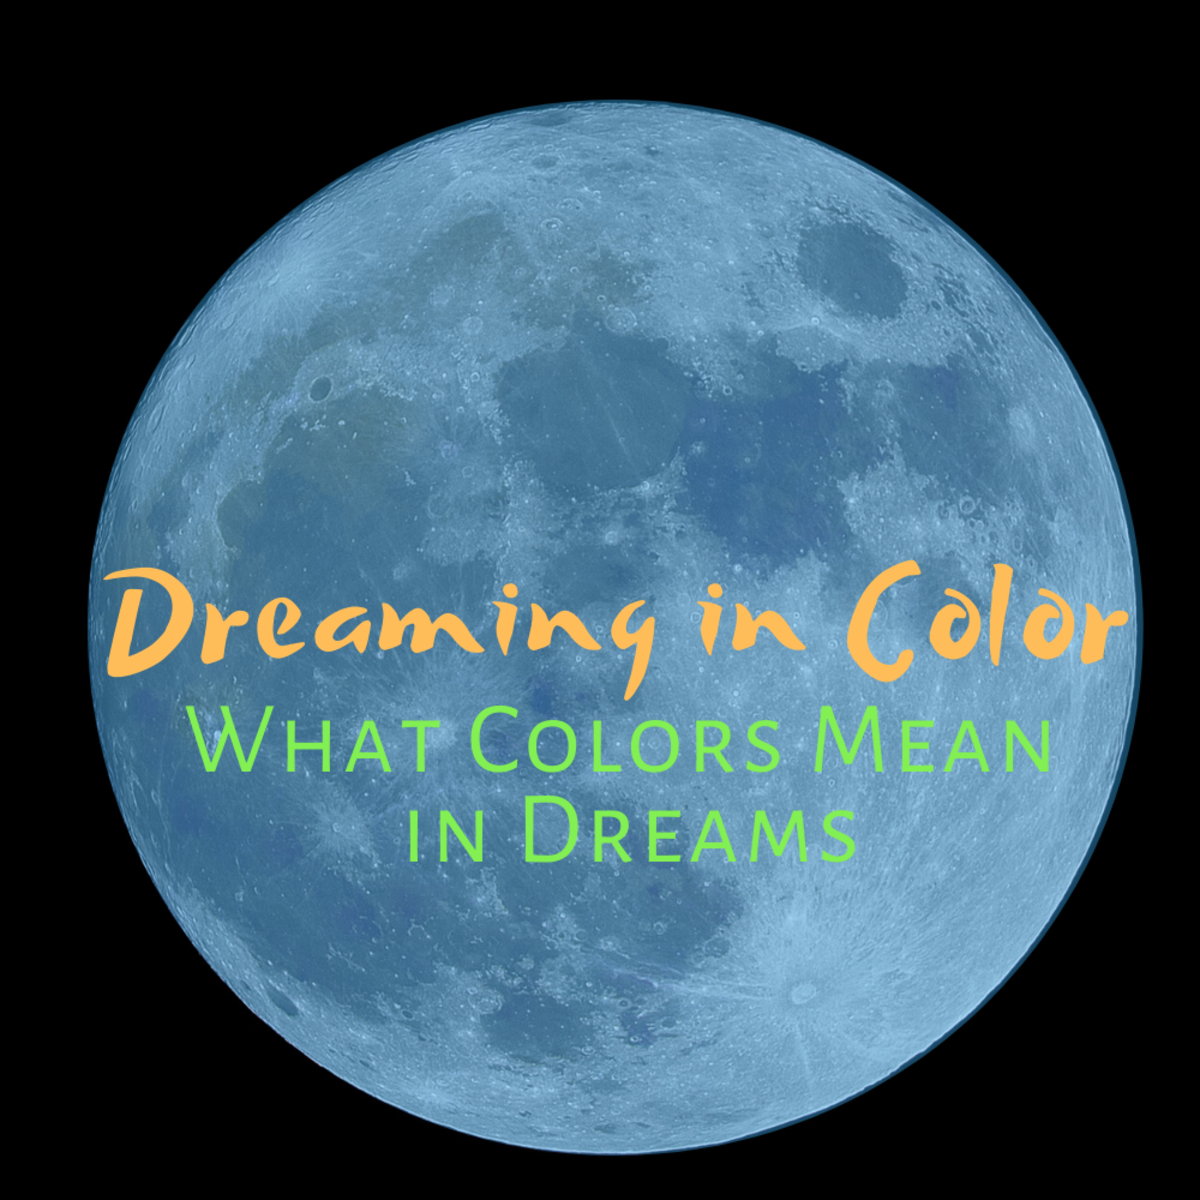 Dreaming in Color: What These 8 Common Colors Symbolize in Dreams